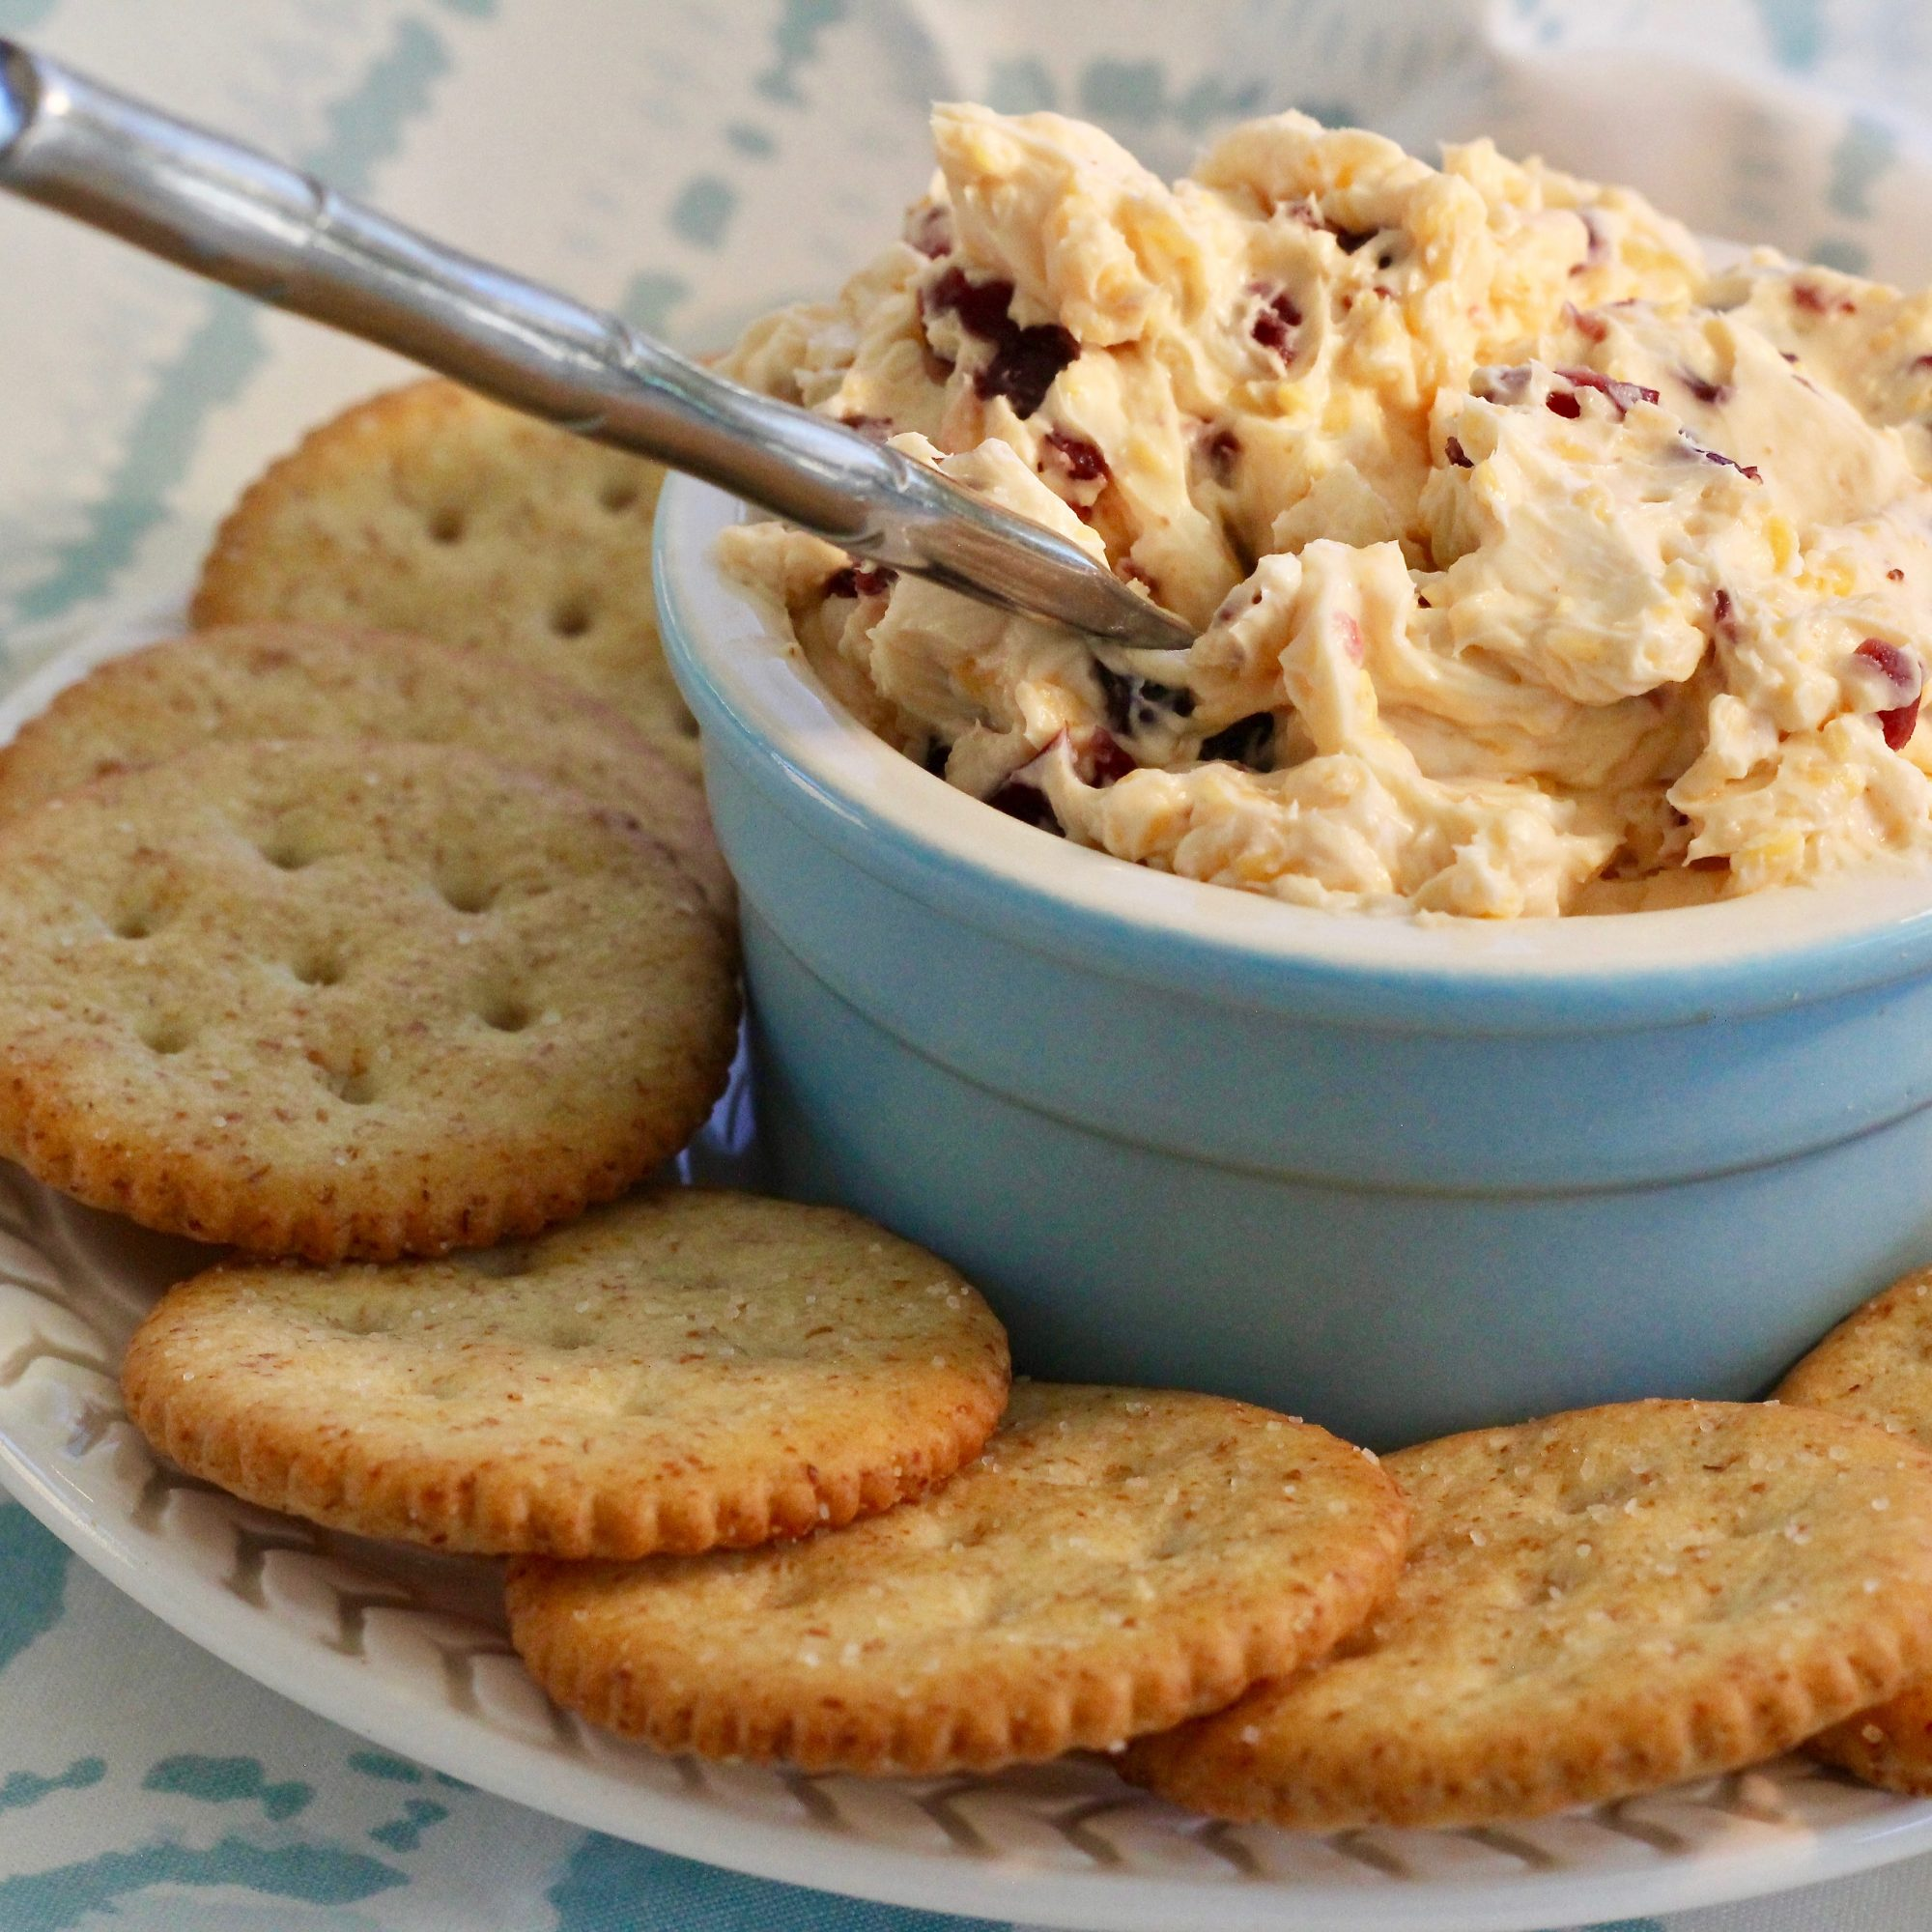 Cheddar and cranberry spread in a blue dish with crackers